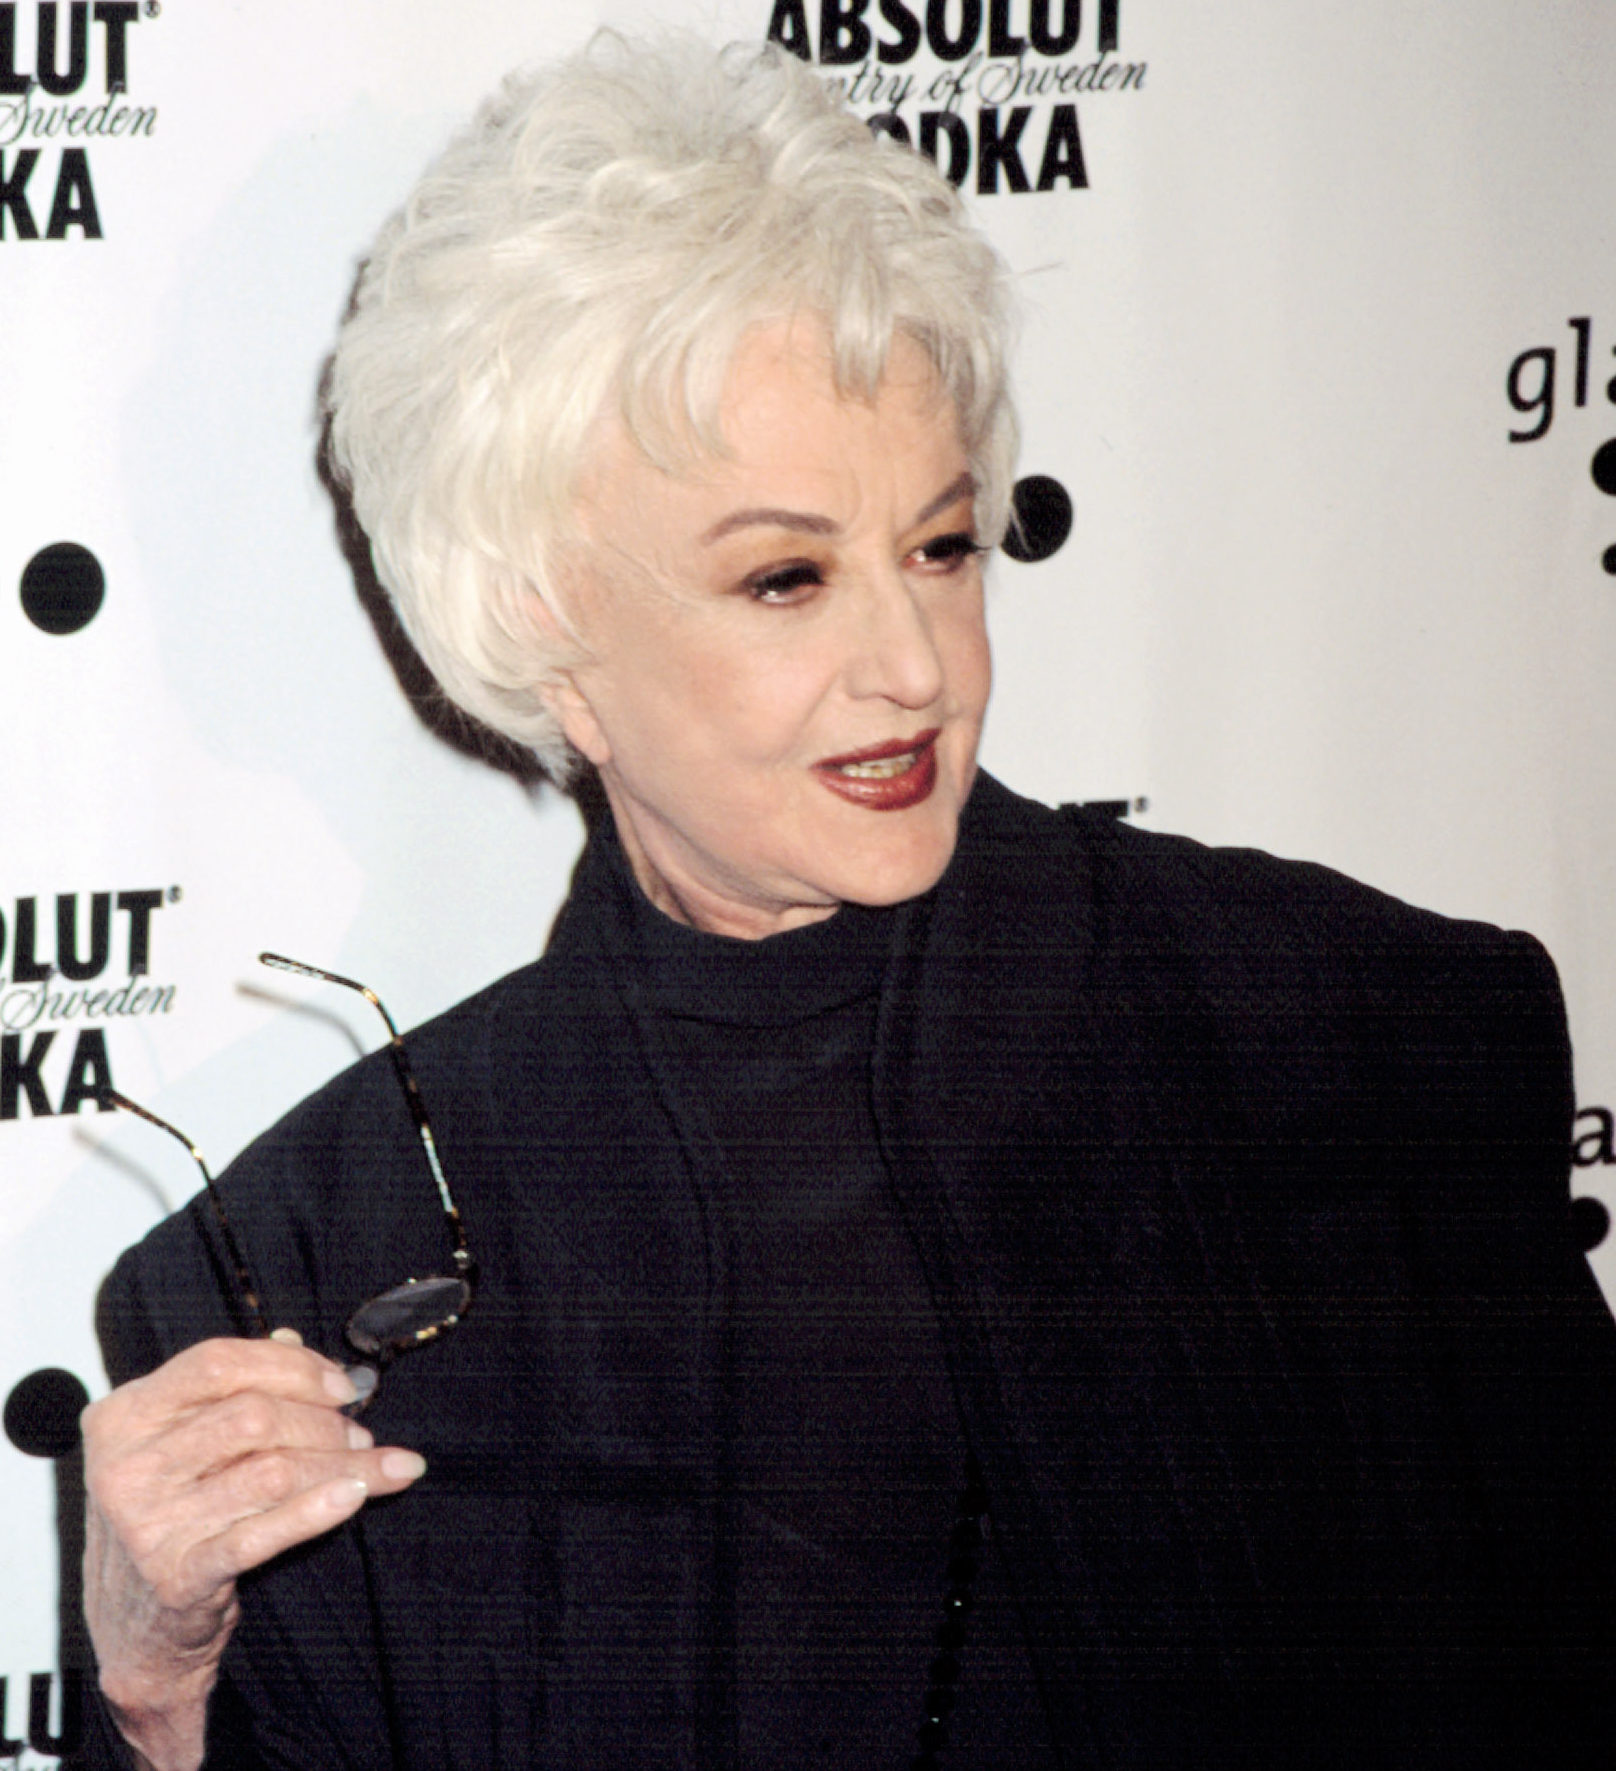 Bea Arthur LightWorkers military